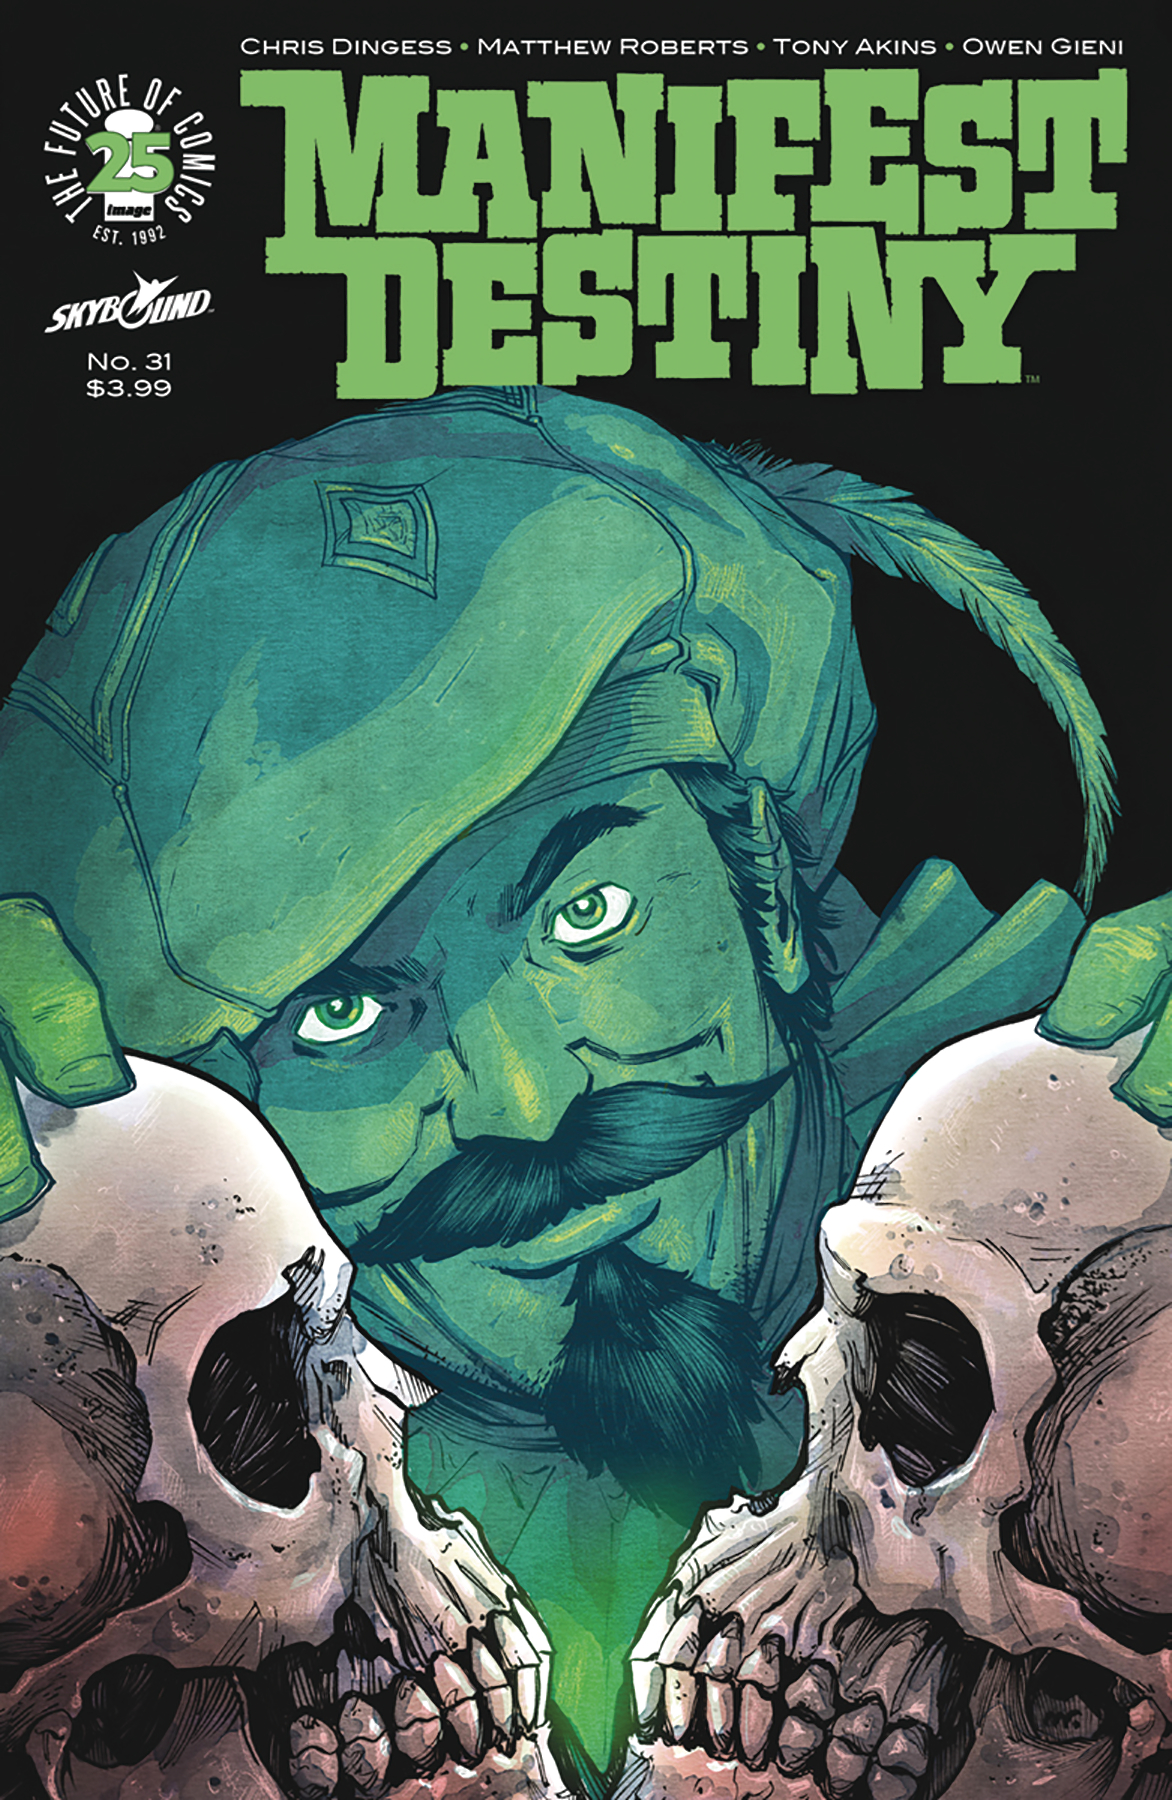 MANIFEST DESTINY #31 (MR)